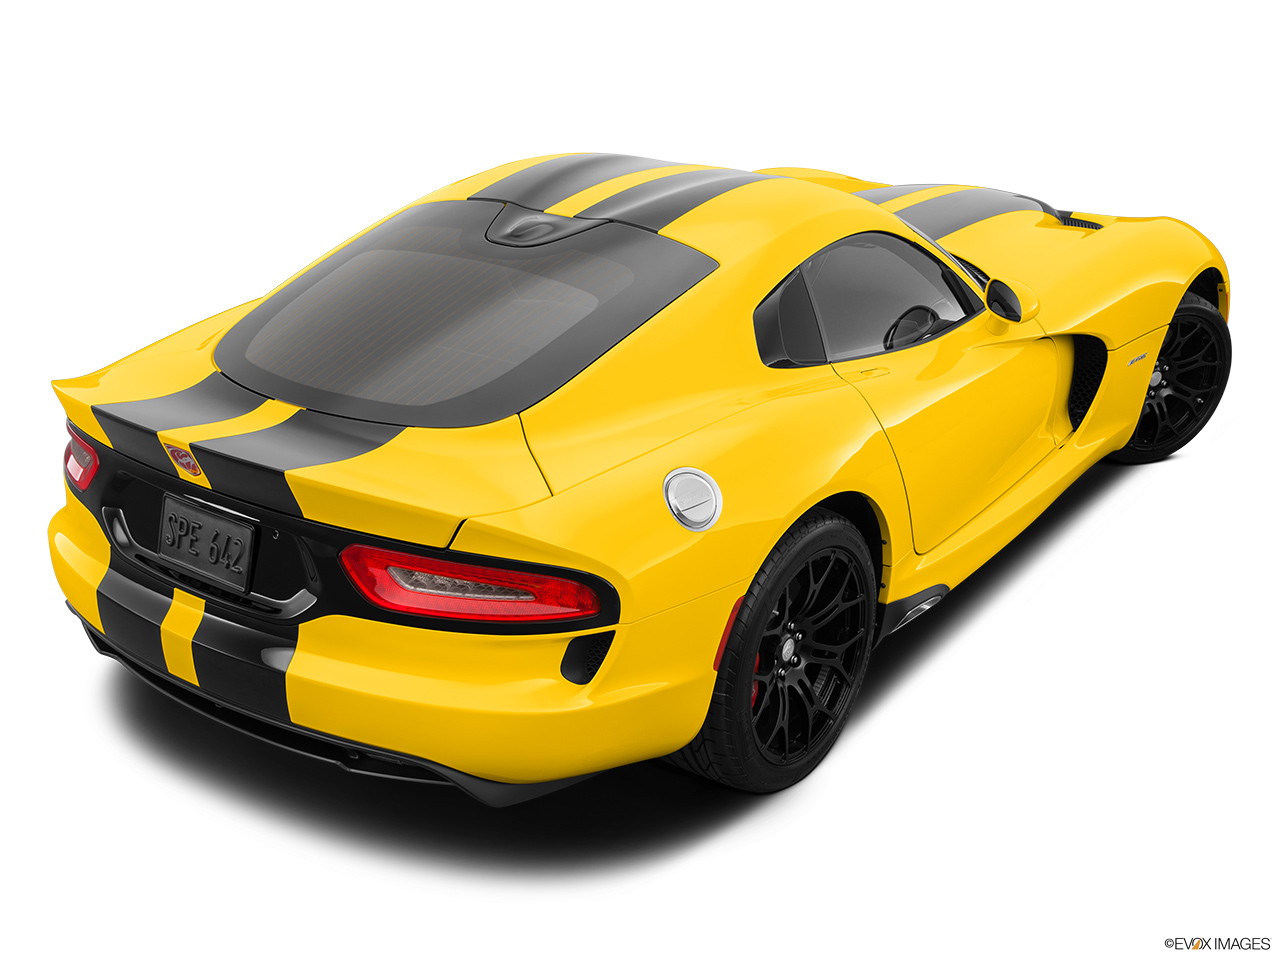 Chevrolet Impala 1958 likewise 2016 2017 Ford Mustang Shelby Gt350 Hpe1200r Twin Turbo Upgrade also Preparaciones4x4 moreover Dota 2 Shadow Fiend Simple Logo as well Watch. on 2015 dodge viper